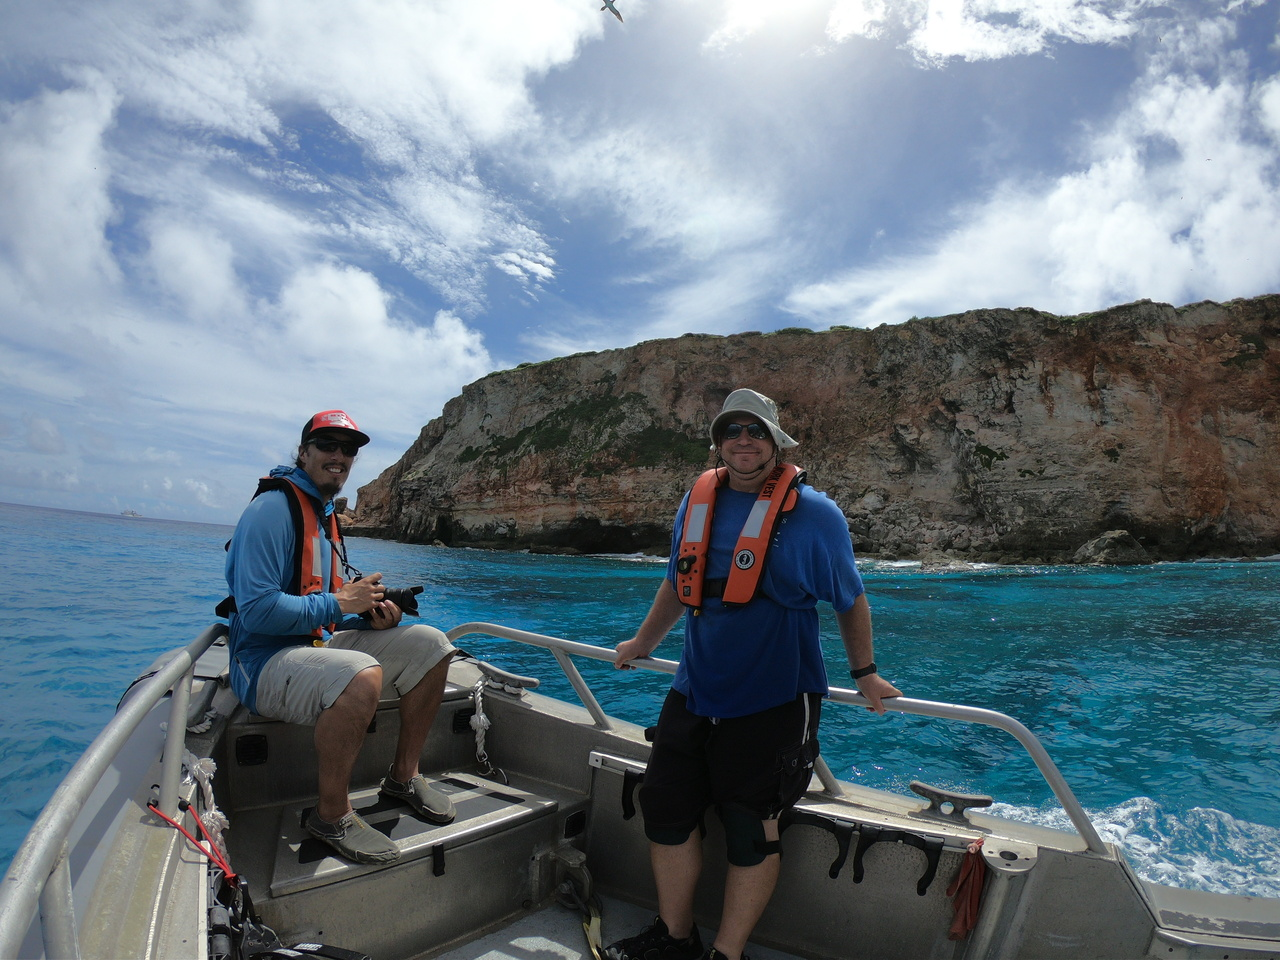 Scientists Adam Ü and Allan Ligon on a small boat near Farallon de Medinilla.